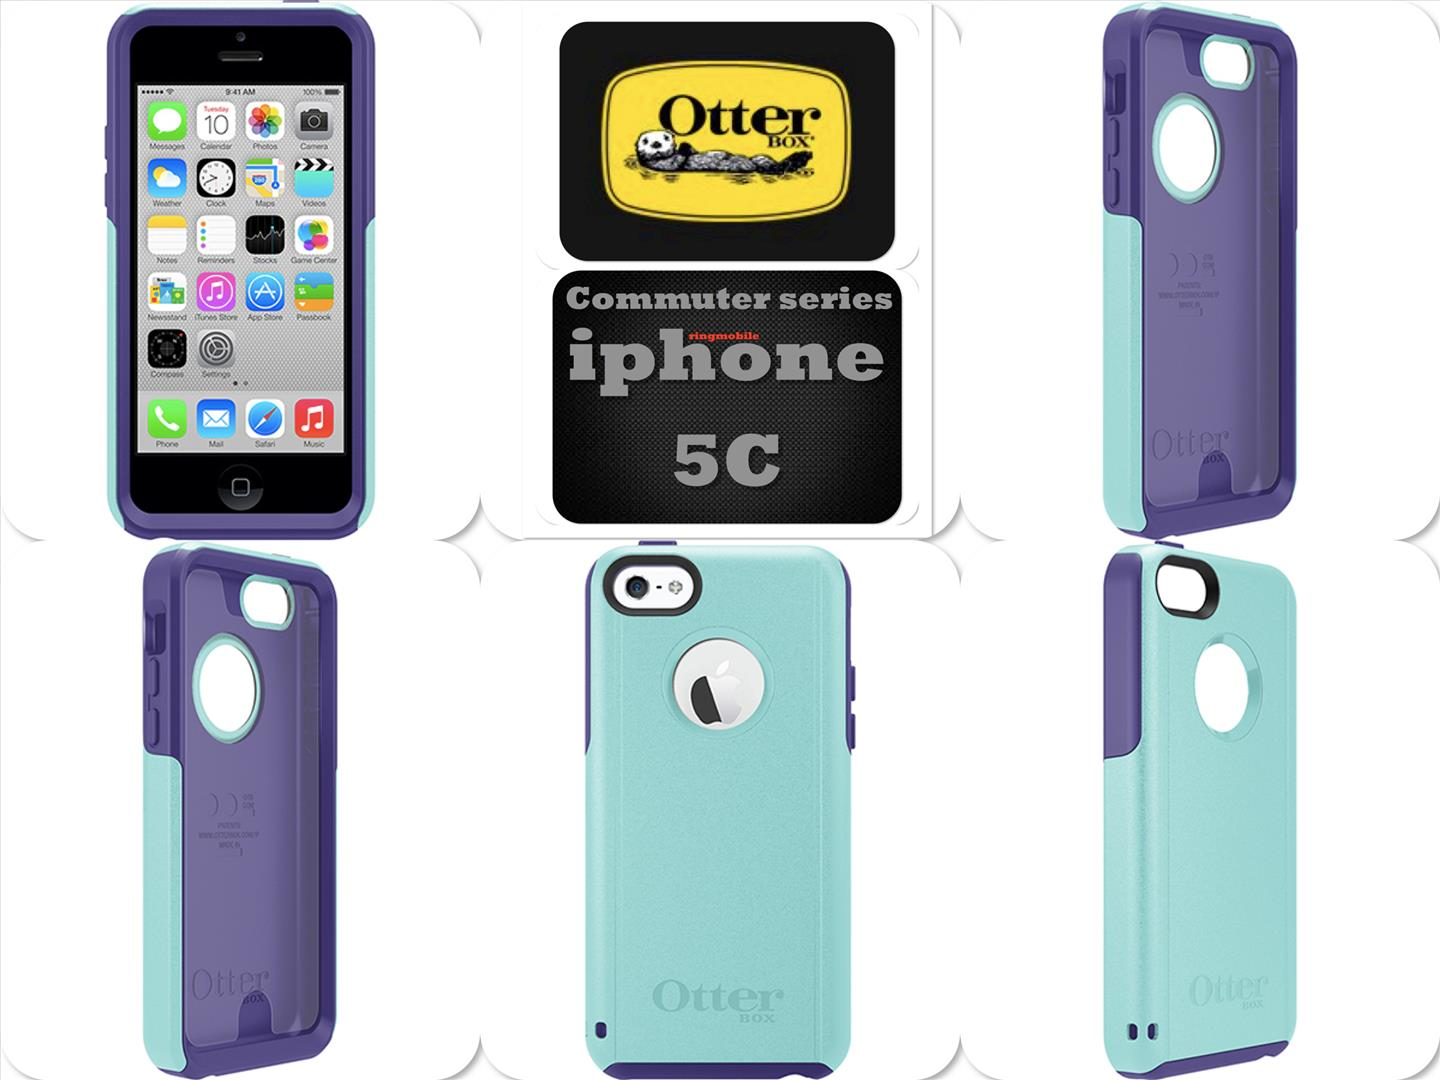 Bdotcom = Apple iPhone 5c OtterBox Commuter Series Case = Lily